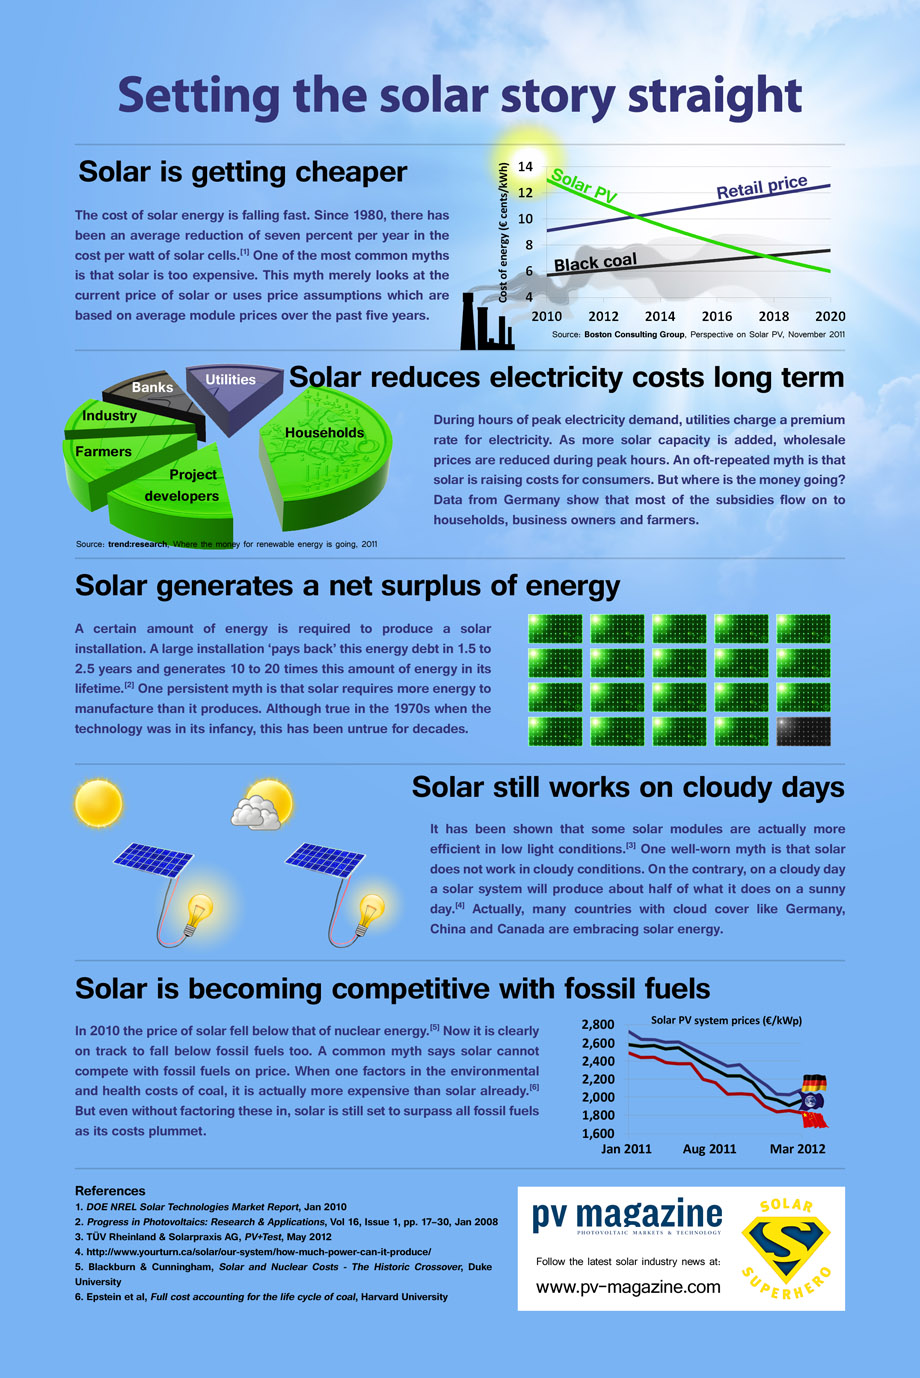 disadvantages of solar energy debunked infographic